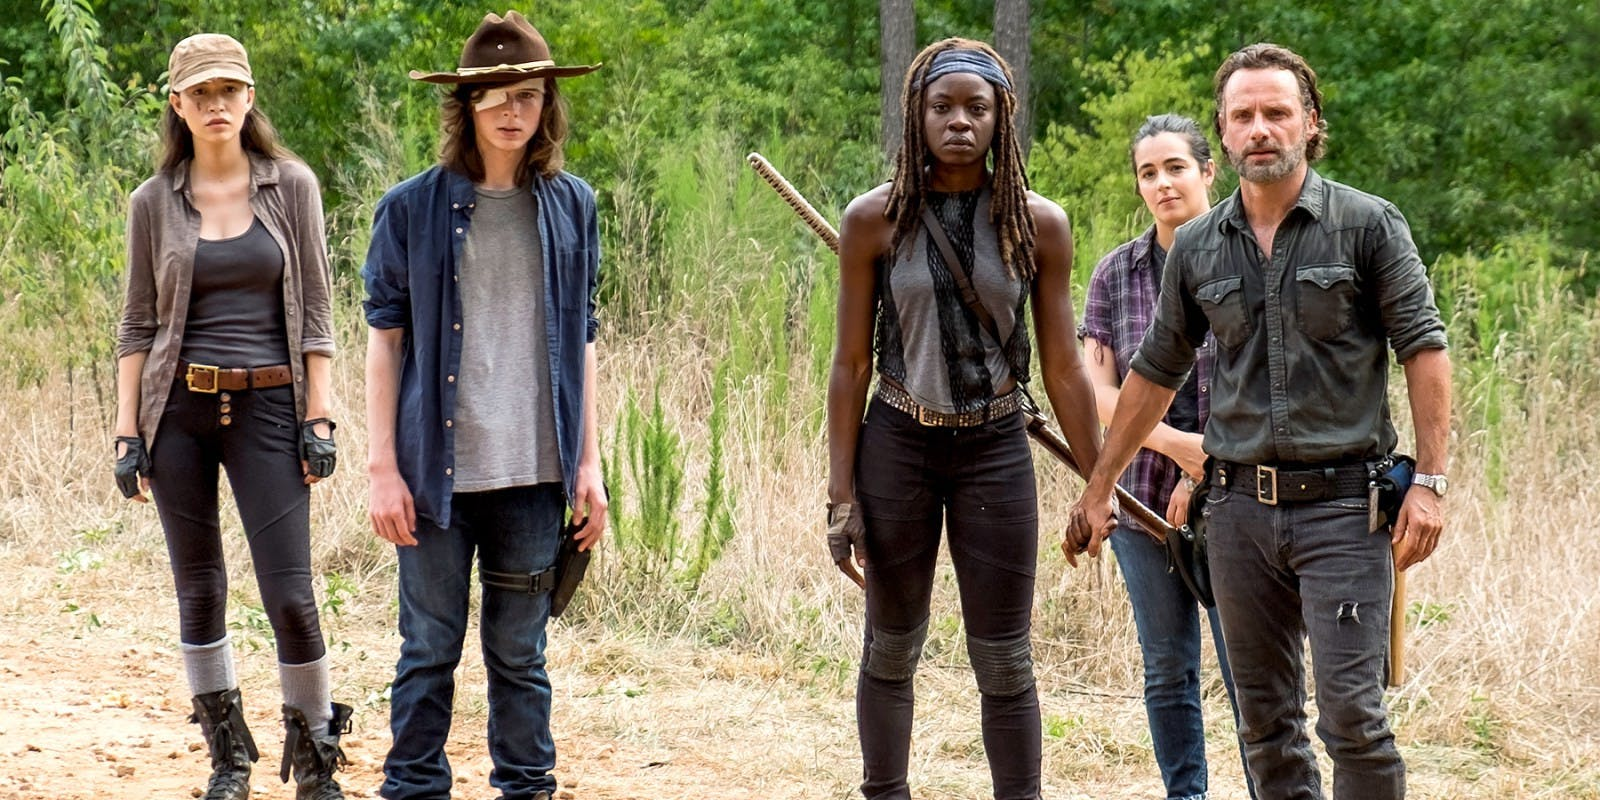 The Walking Dead Producer Explains Why The Show's Ratings Are Falling